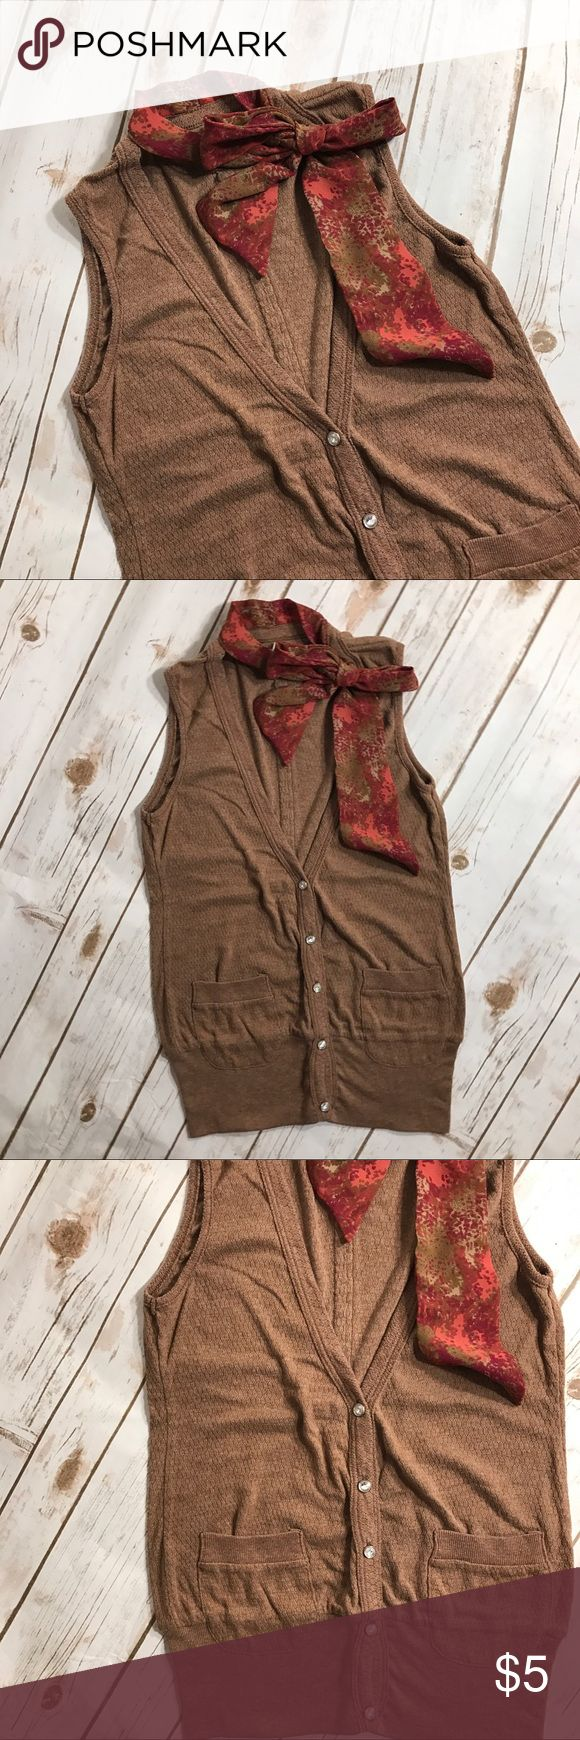 """Charlotte Russe brown vest Super cute brown vest with wax diamond buttons. Attached collar has scarf like look to tie as a bow. Measurements for flat lay: Shoulder to Shoulder (12"""") Armpit to Armpit (12"""") Top to Bottom (25"""") Charlotte Russe Tops Blouses"""